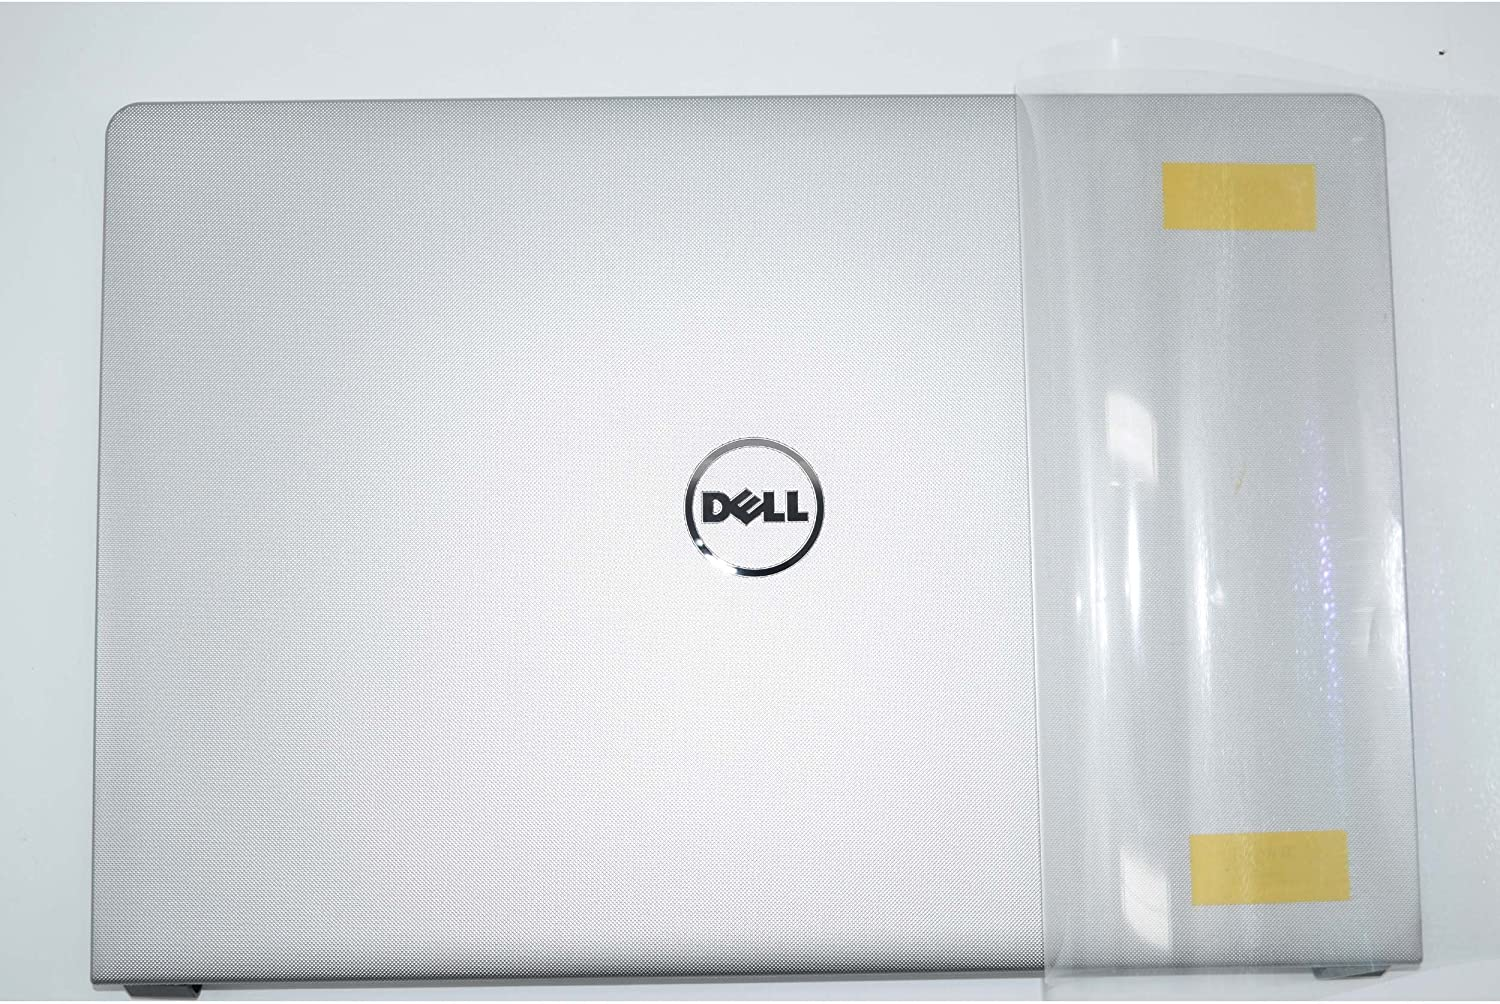 Nodrlin New Laptop Parts For Dell 15 5000 5555 5558 5559 Lcd Rear Cover Top Shell Screen Case 00YJYT 0YJYT